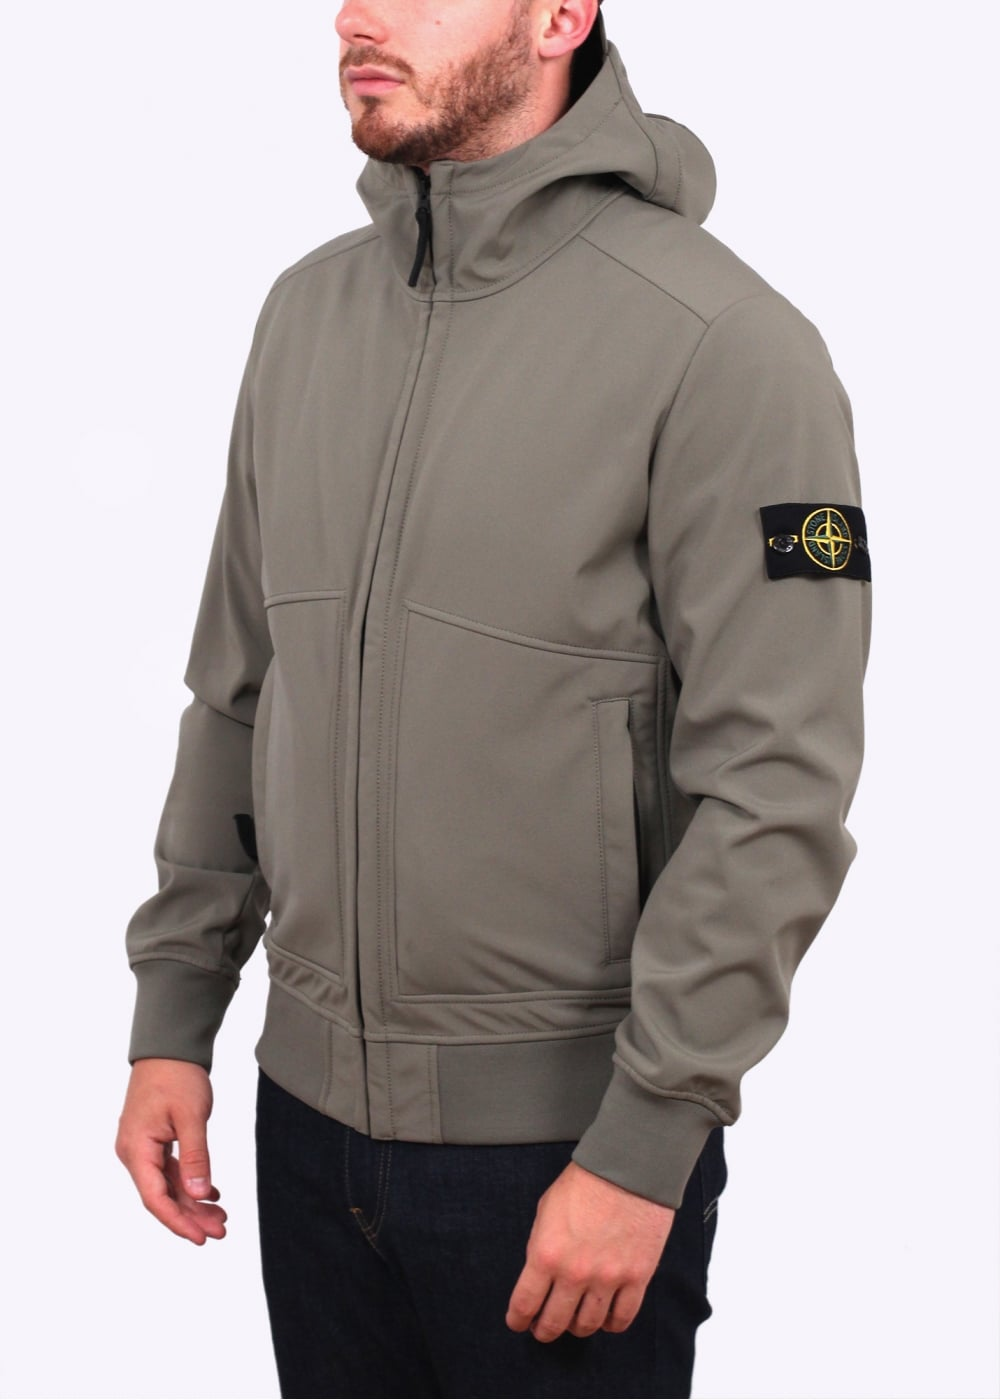 stone island soft shell r jacket sage stone island from triads uk. Black Bedroom Furniture Sets. Home Design Ideas